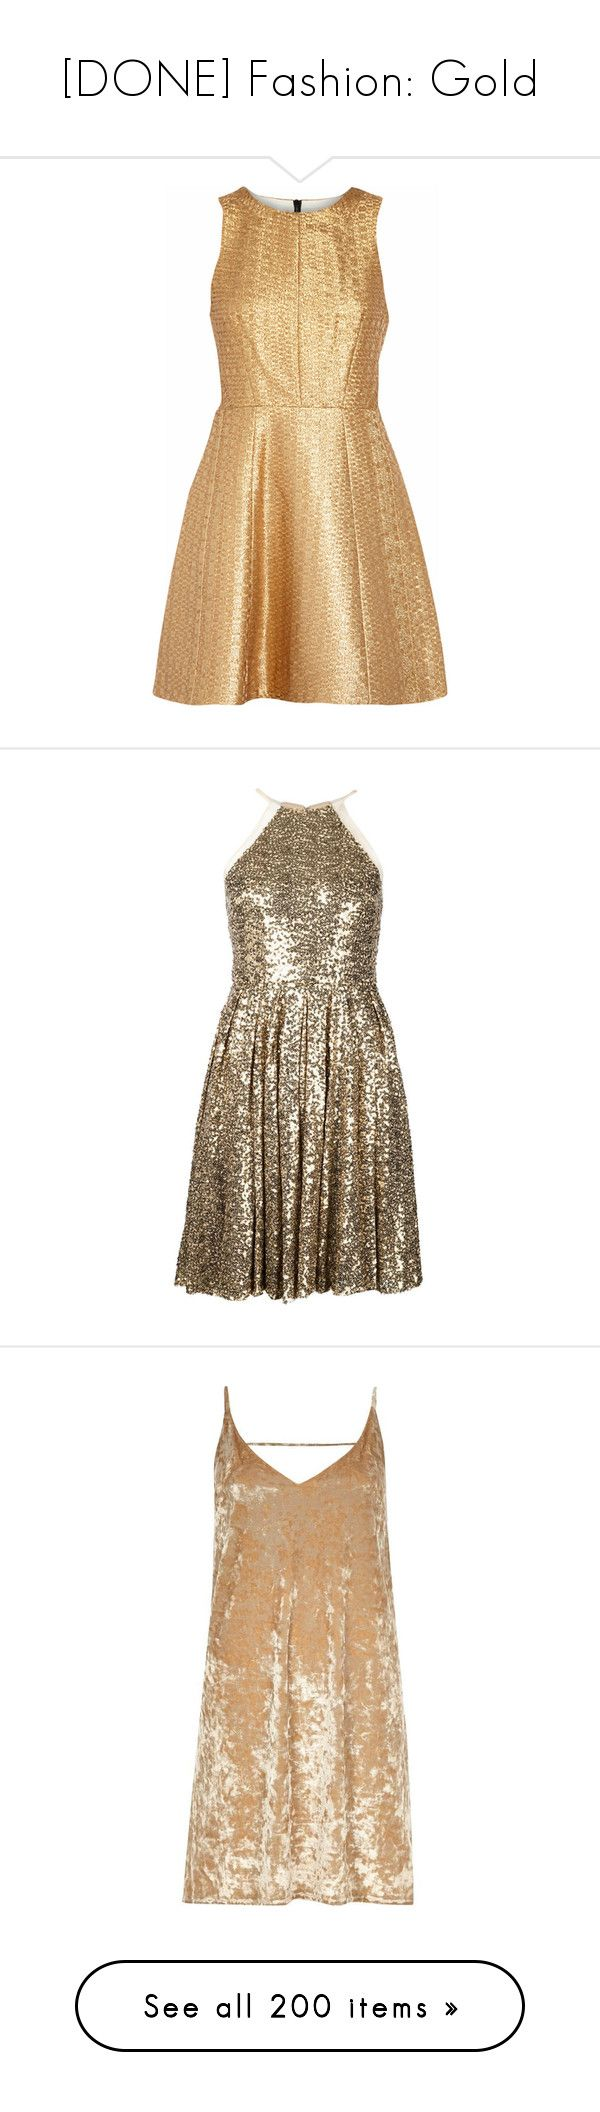 """[DONE] Fashion: Gold"" by jmn312 ❤ liked on Polyvore featuring dresses, vestidos, party dresses, short dresses, gold, short mini dress, metallic mini dress, beige short dress, zipper dress and metallic short dress"